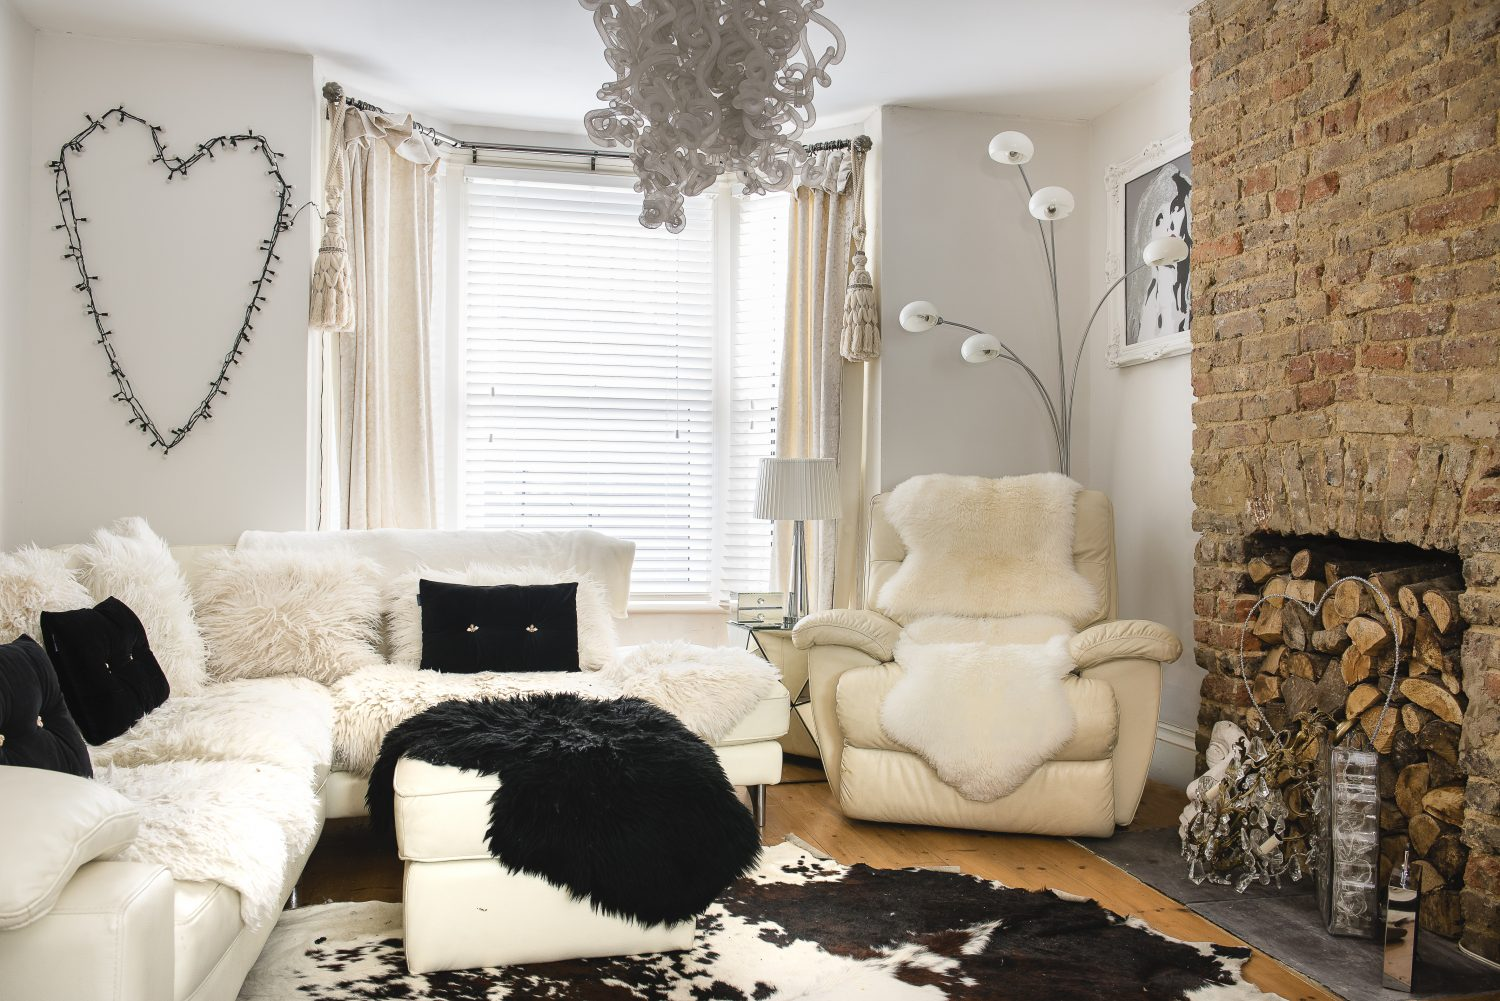 Sarah loves sheepskins and buys them everywhere from Dunelm to boot fairs. She found the white leather La-Z-Boy recliner in a charity shop in Bexhill. She made the heart-shaped light feature out of strings of fairy lights.